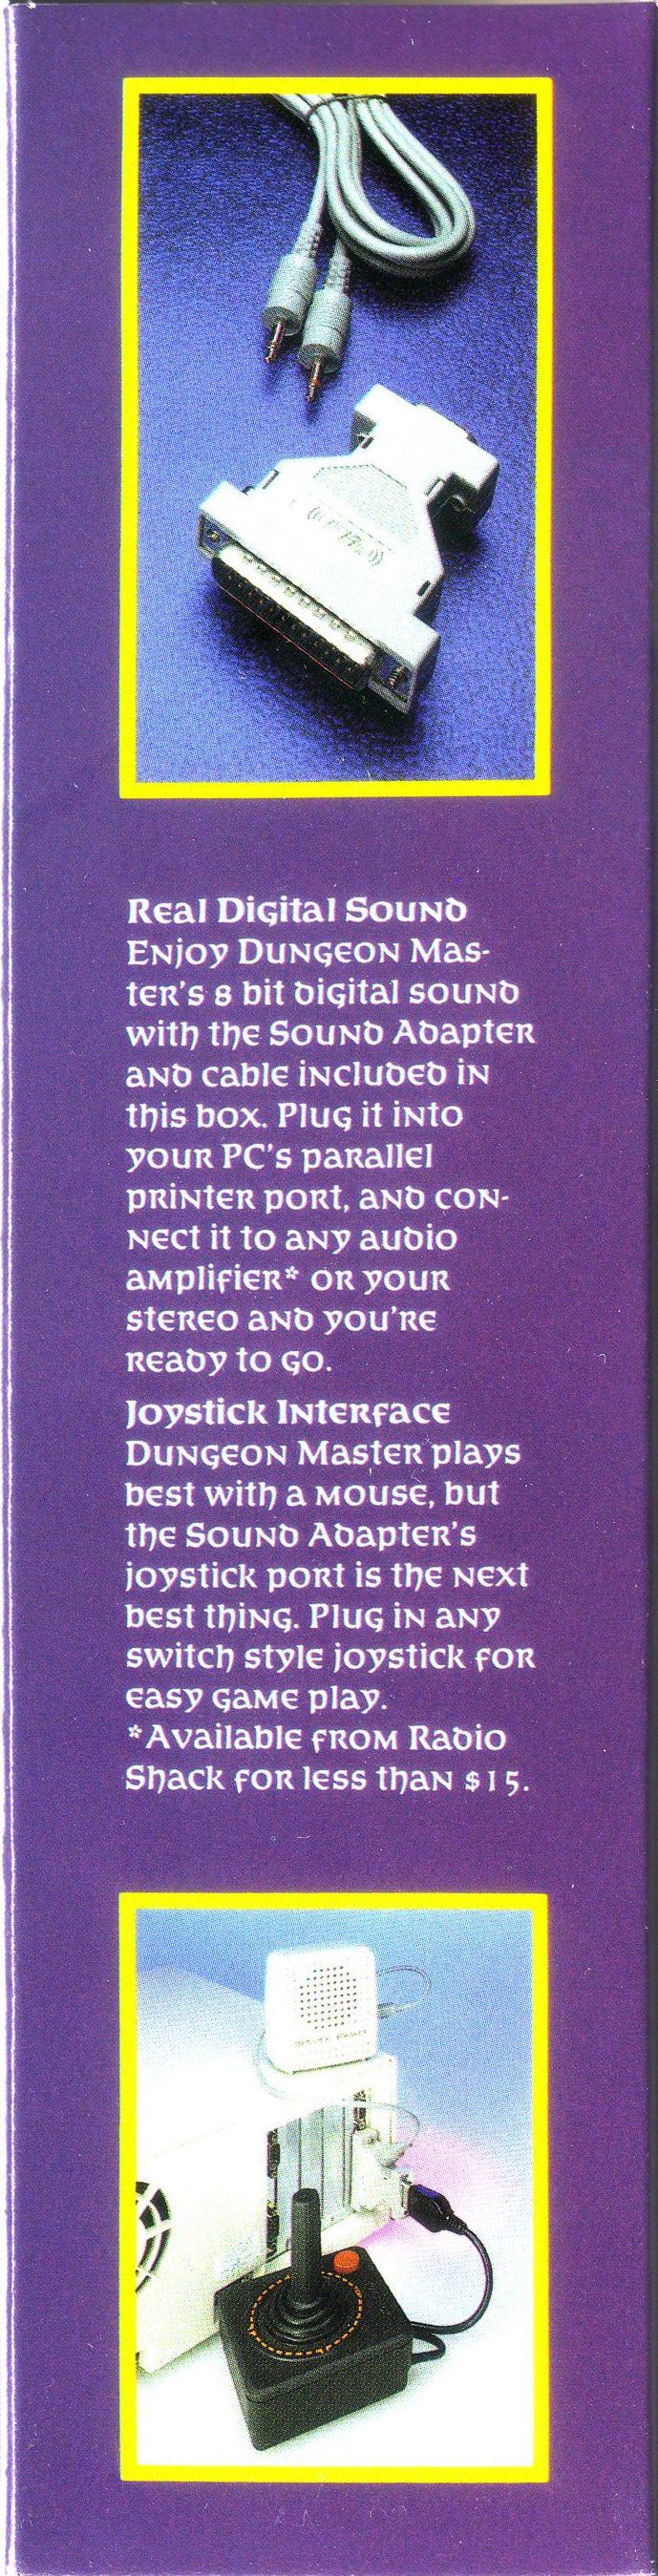 Dungeon Master for PC with FTL Sound Adapter (US Release) - Sound Adapter Box Back